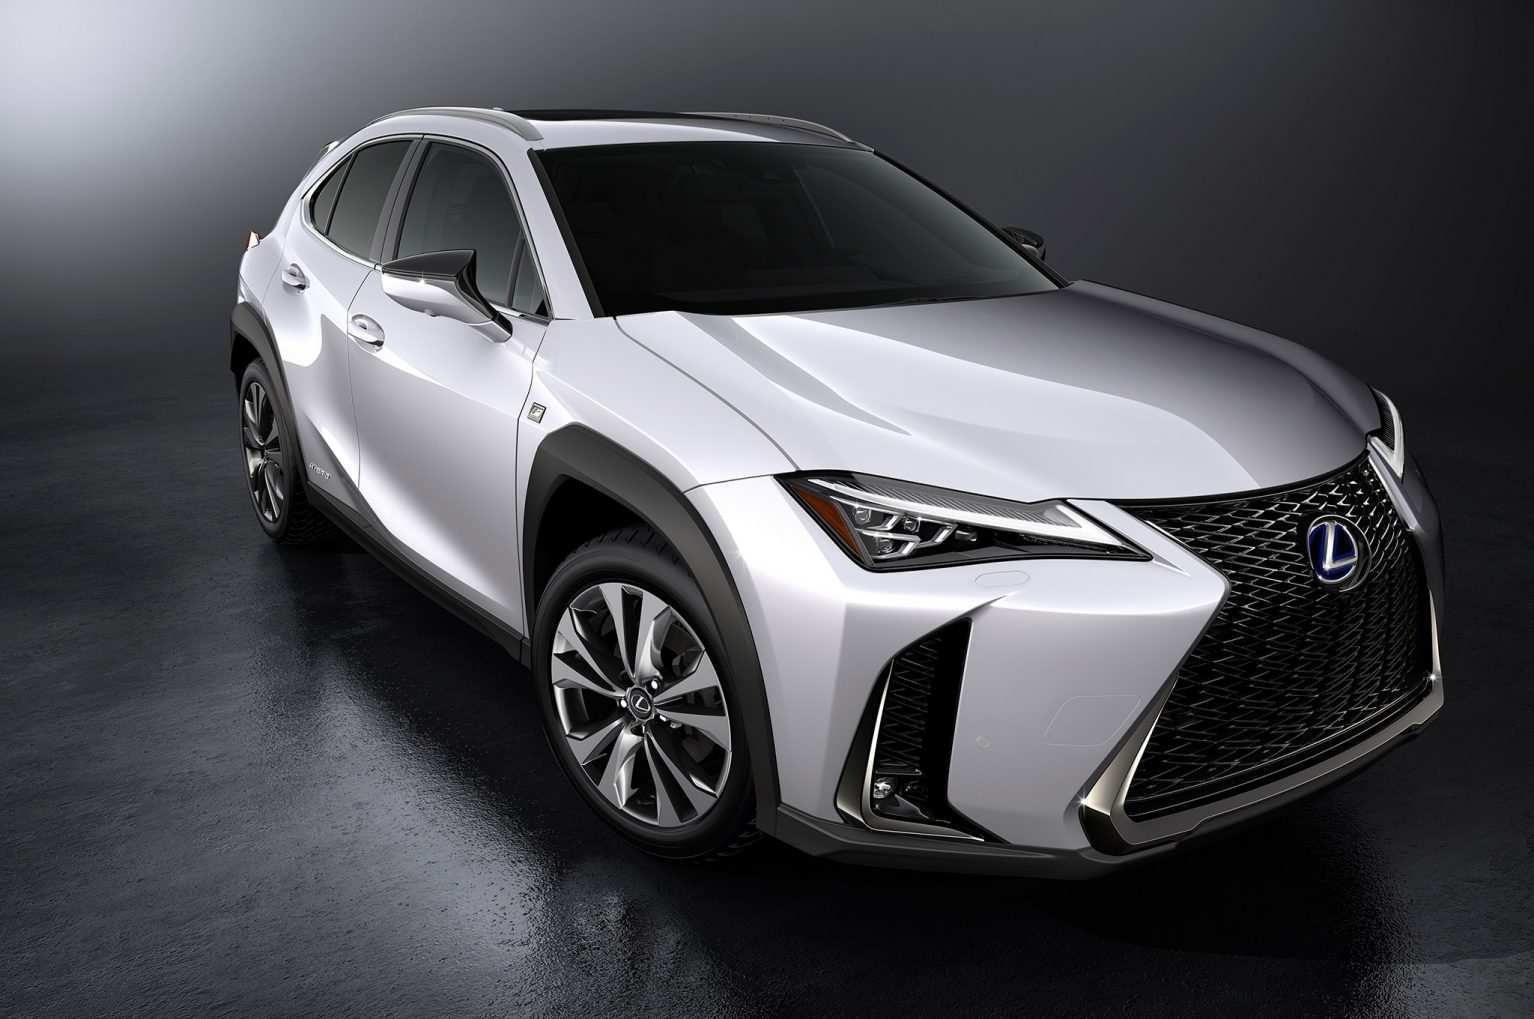 97 New Lexus 2019 Ux Release Date Price and Review by Lexus 2019 Ux Release Date